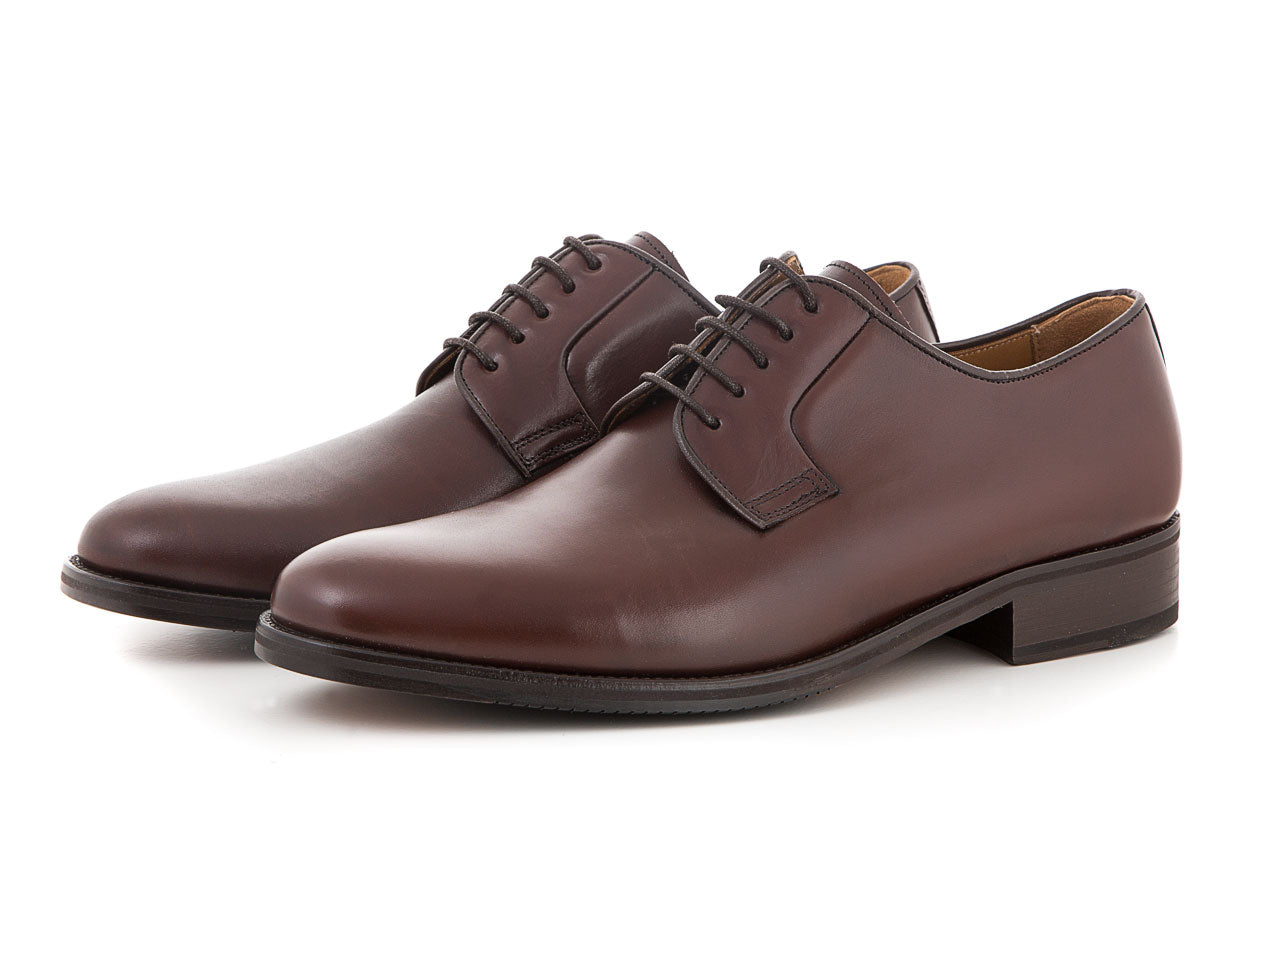 High-quality handmade leather shoes suit | camino71